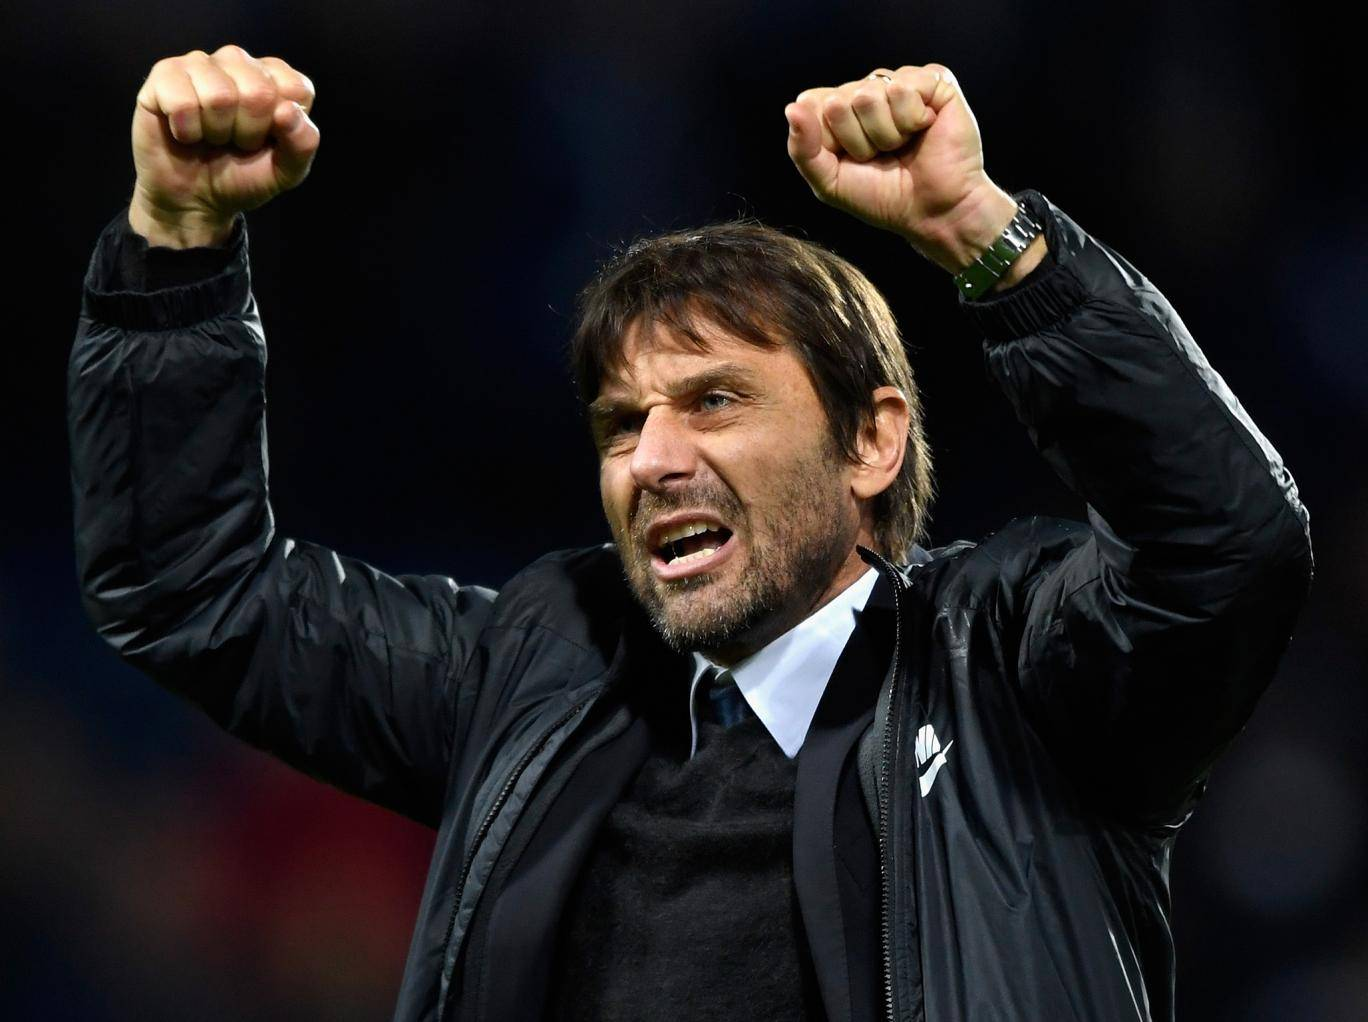 Conte: If Chelsea want me out in the summer they are going to have to sack me